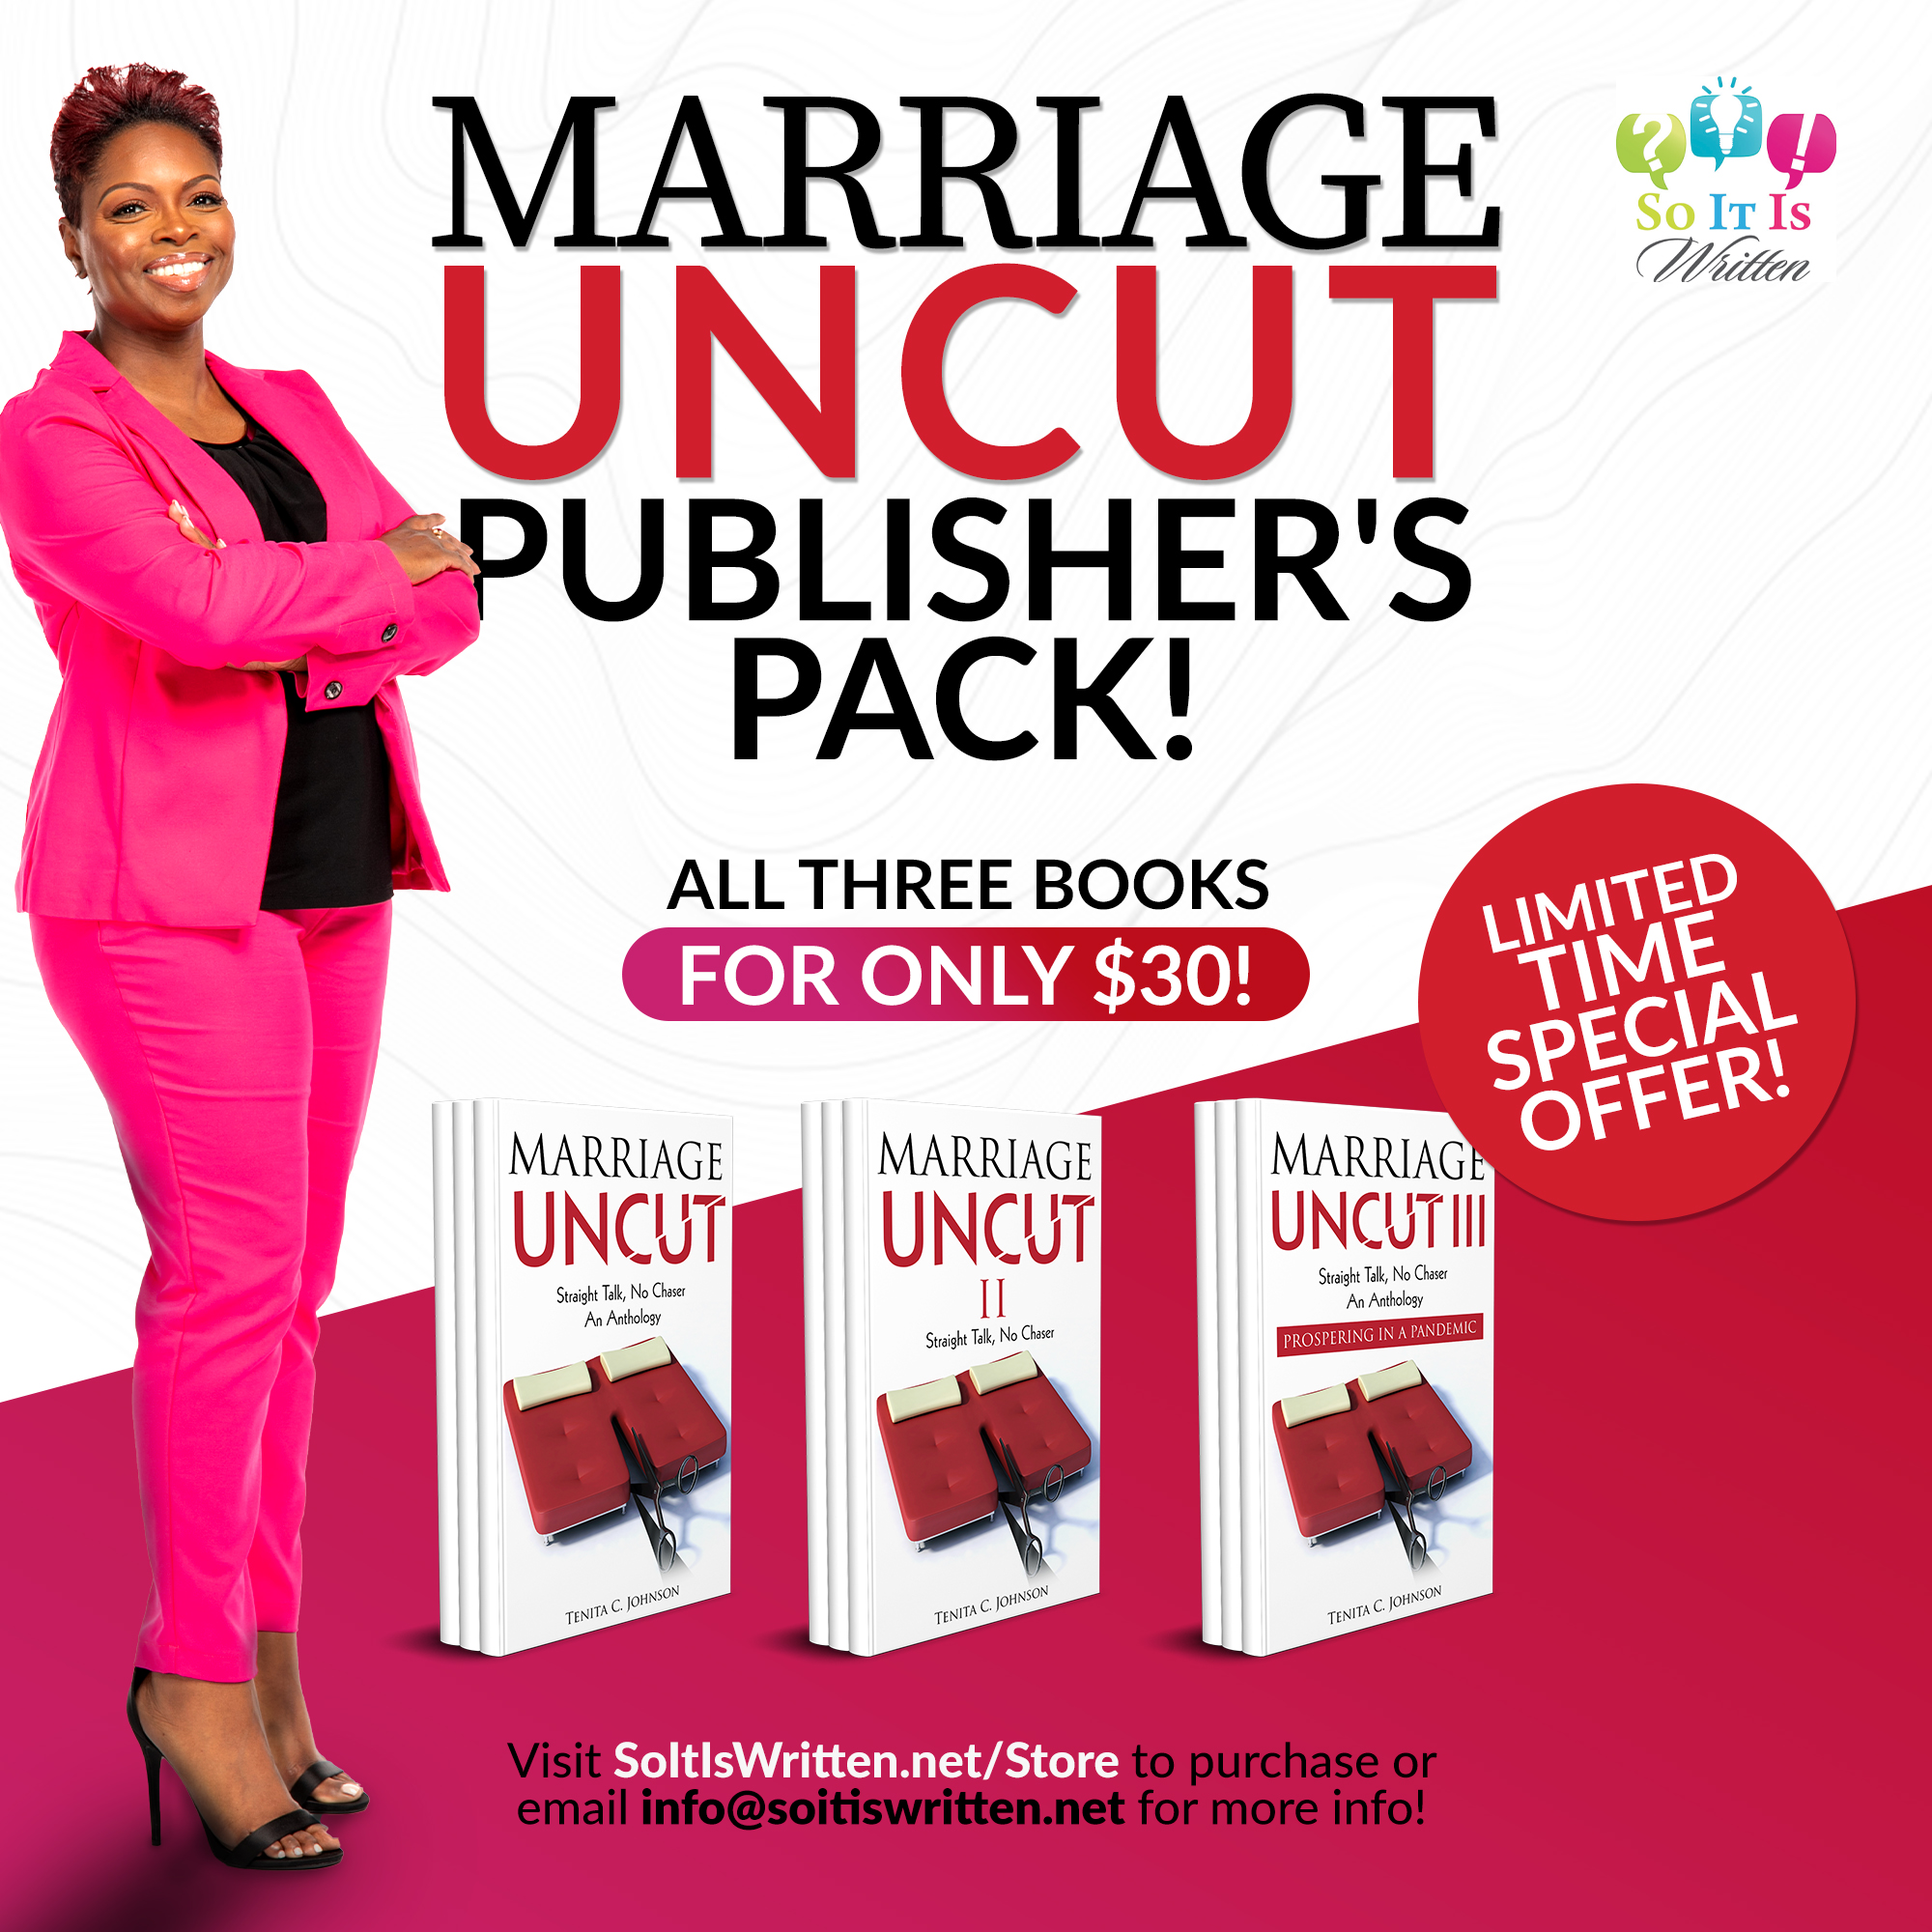 Marriage Uncut Publisher's Pack! All three books for only $30! Limited time special offer! #michlit @tenitajeditor